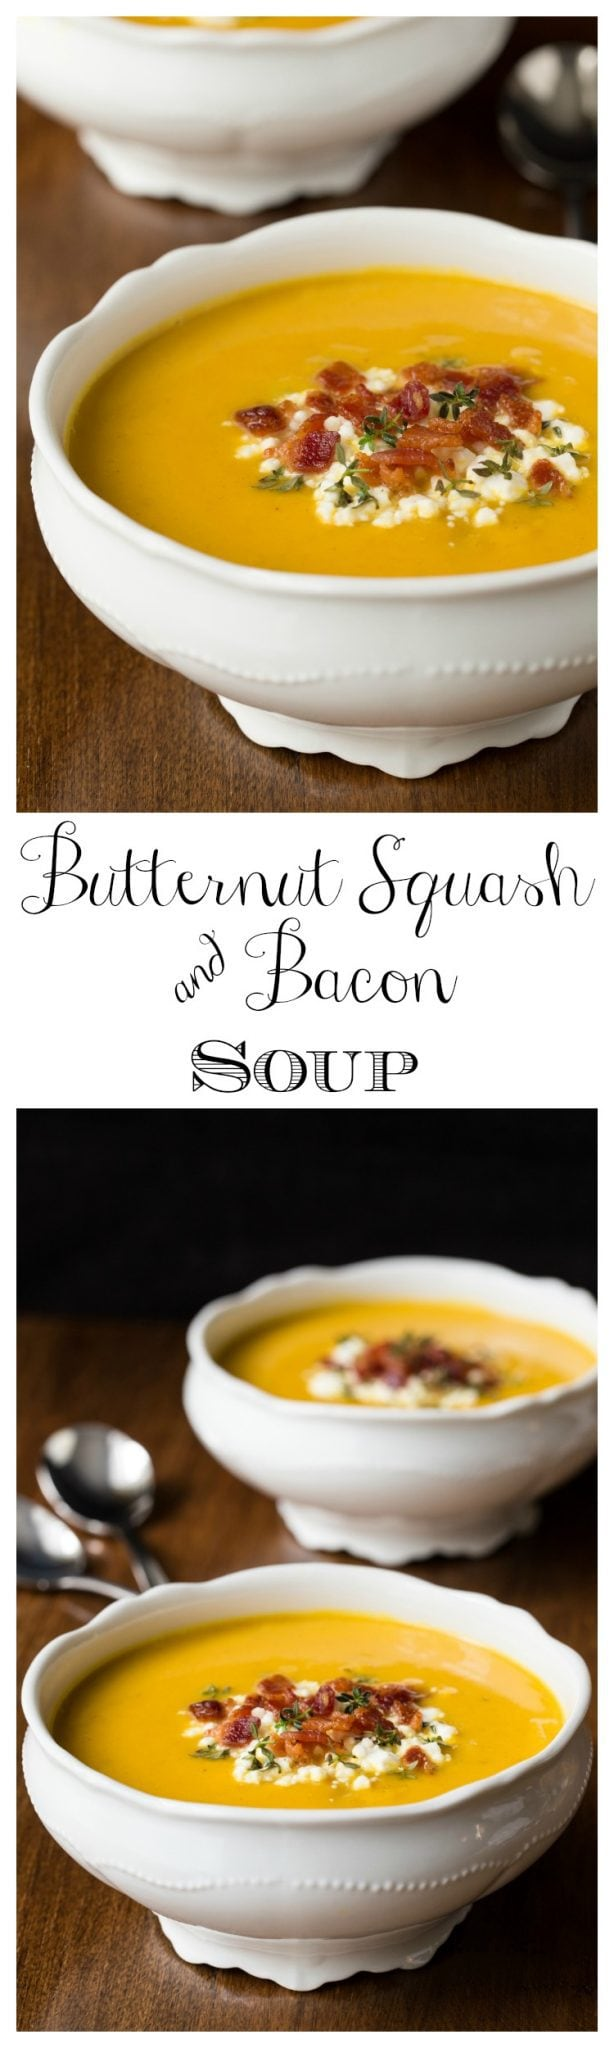 Butternut Squash and Bacon Soup - healthy, lean and full of flavor, this elegant soup is perfect for lunches and casual dinners!